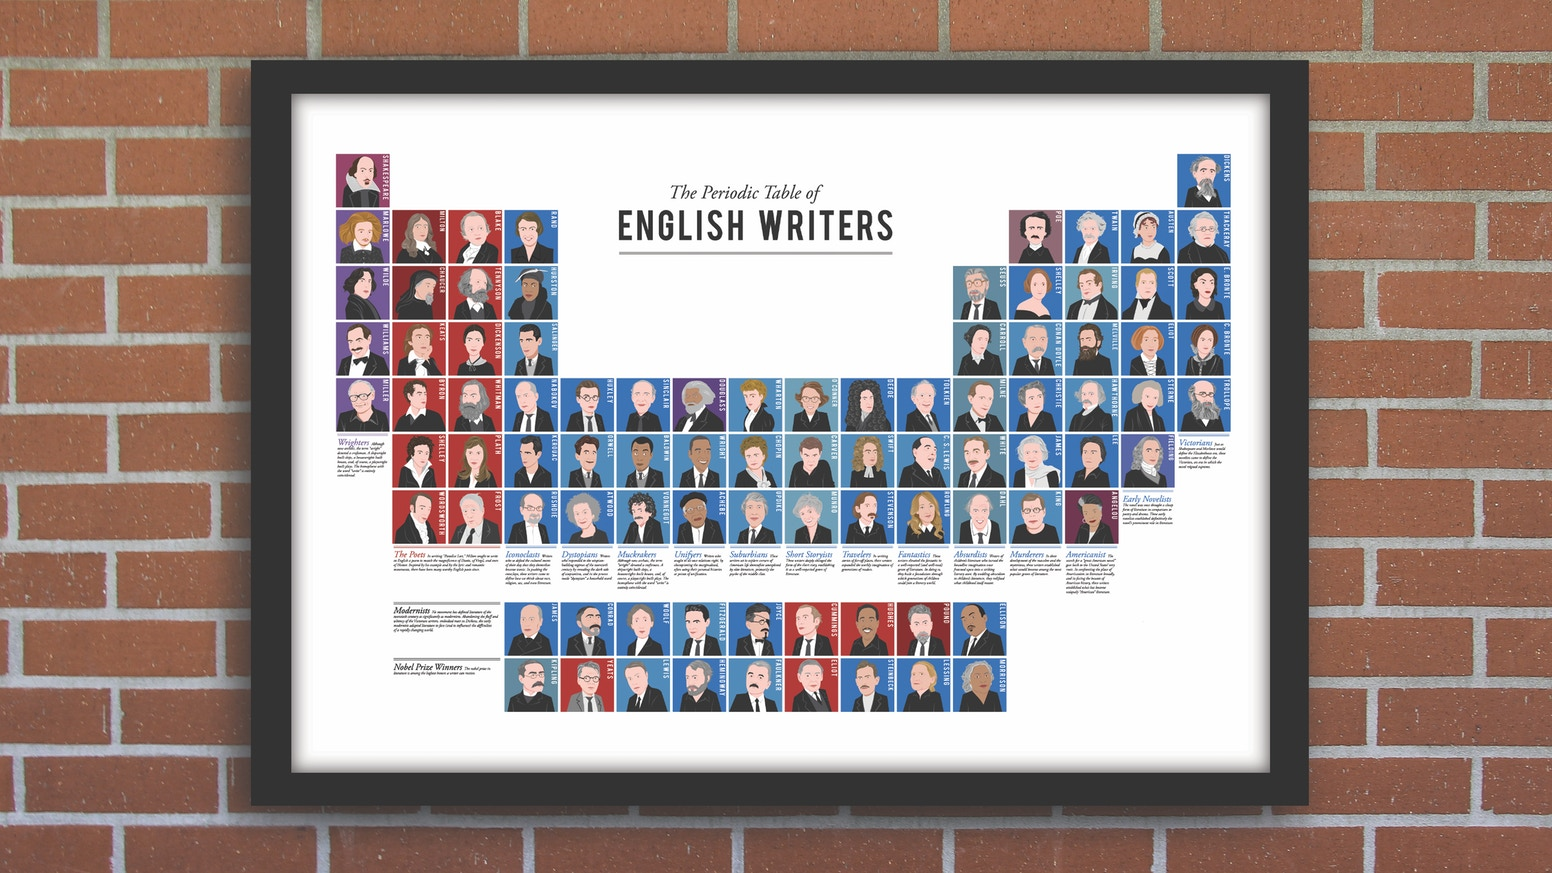 The periodic table of english writers by griffin gonzales the periodic table of english writers gamestrikefo Image collections